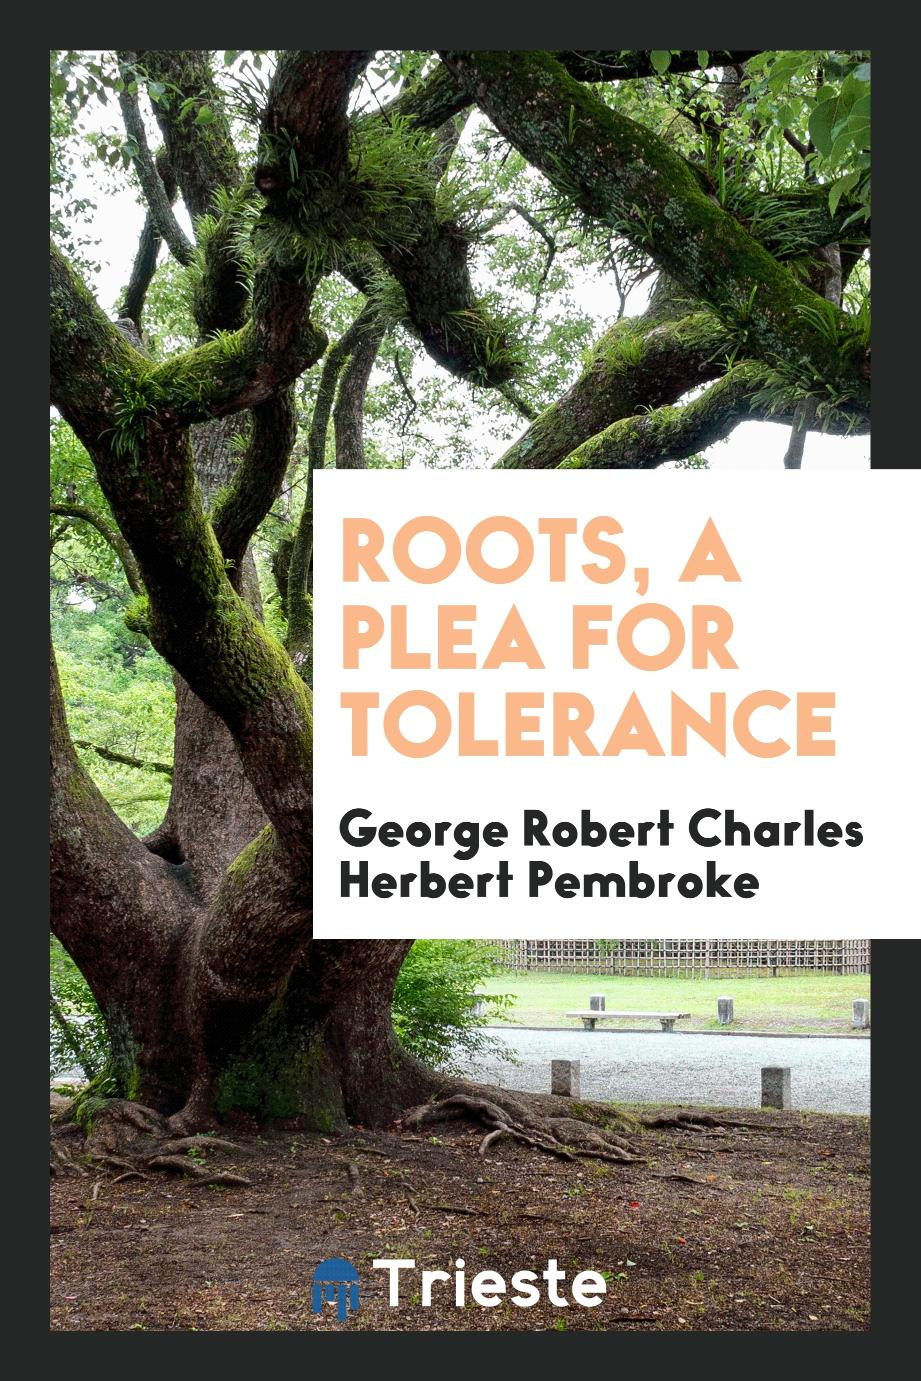 Roots, a plea for tolerance